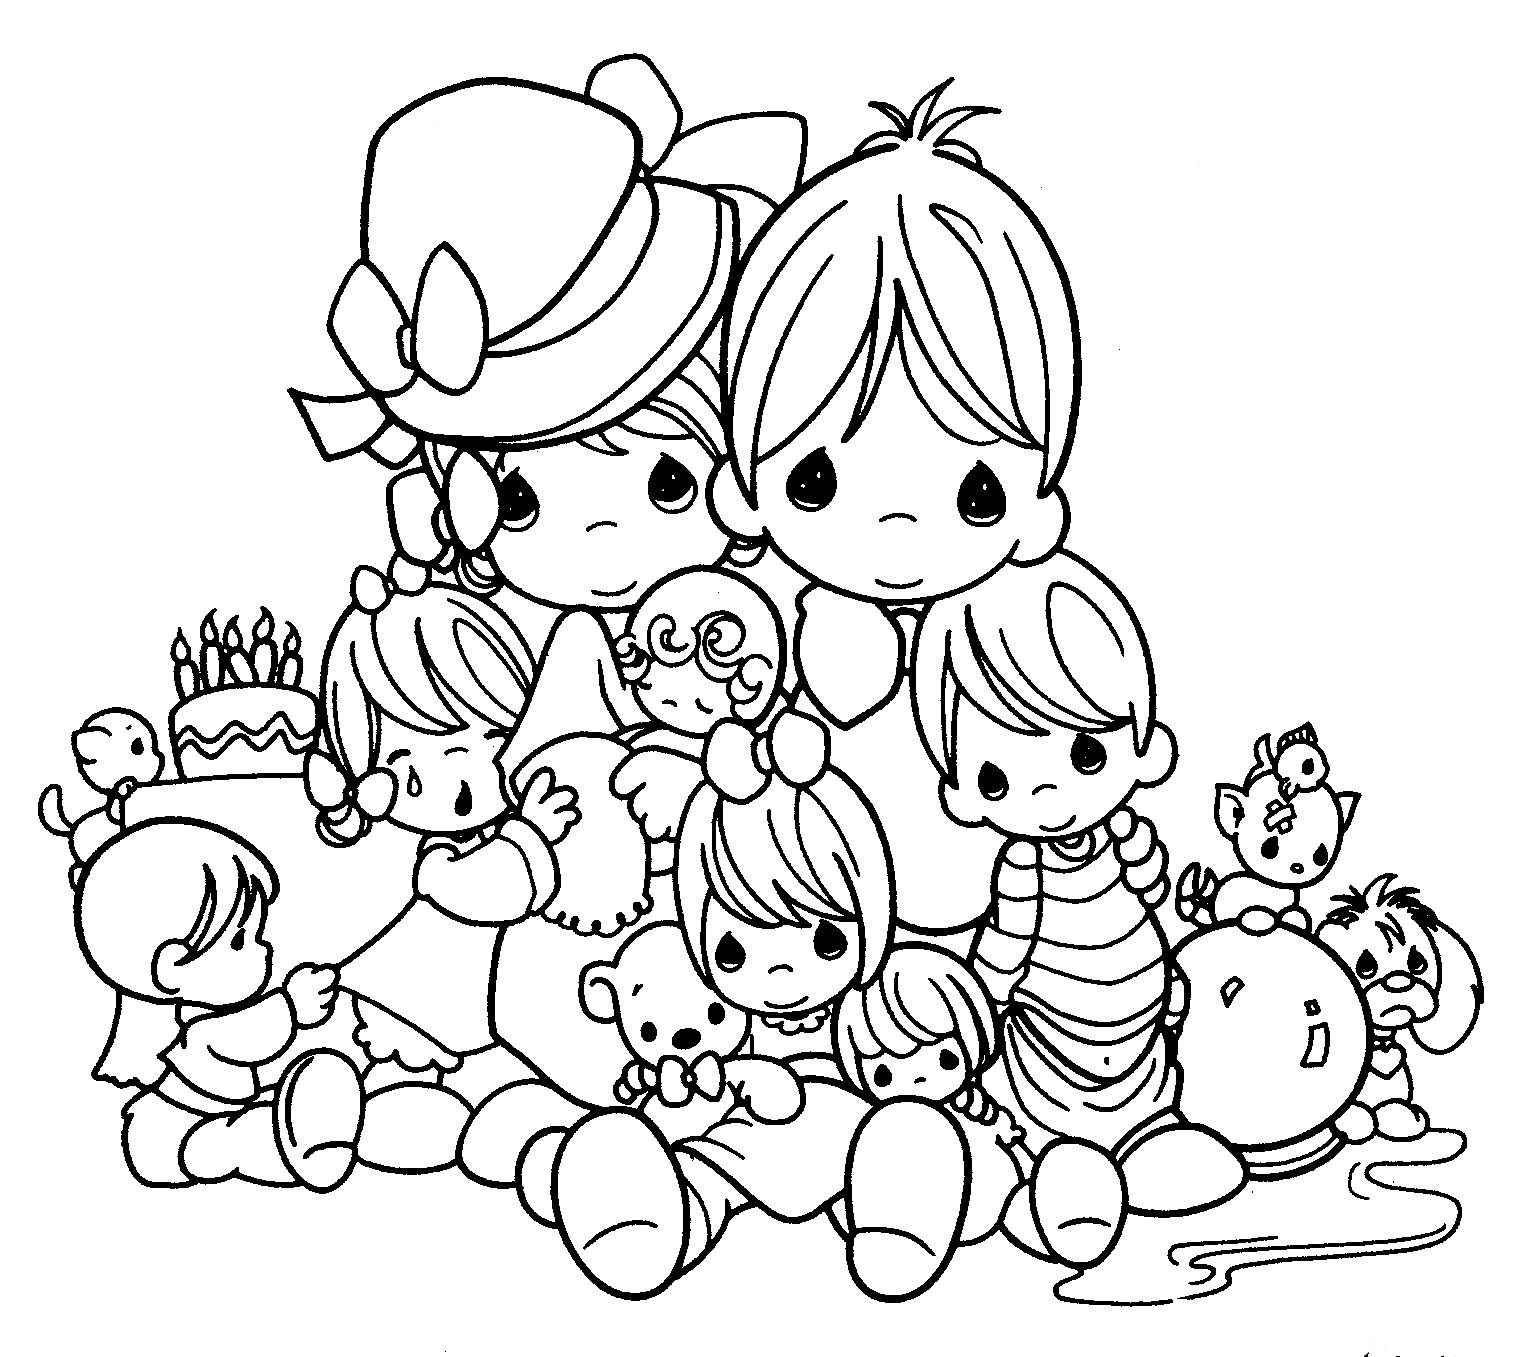 precious moment family coloring pages - photo#15